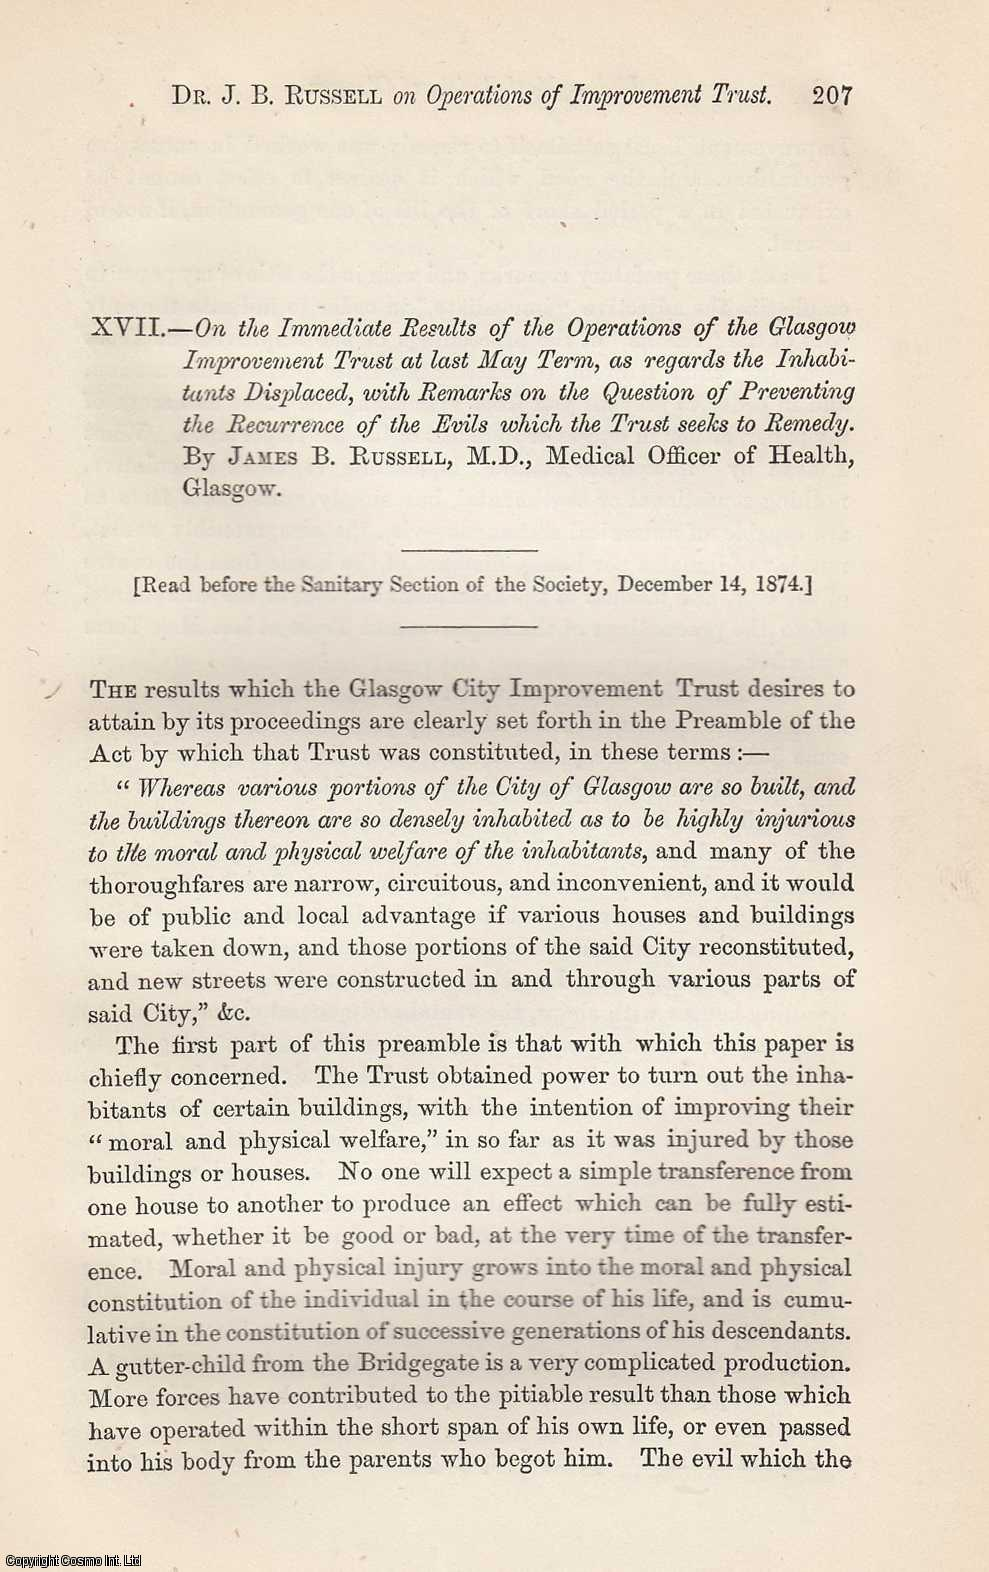 JAMES B. RUSELL, M.D., MEDICAL OFFICER OF HEALTH, GLASGOW - On the Immediate Results of the Operations of the Glasgow Improvement Trust at last May Term, as regards the Inhabitants Displaced, with Remarks on the Question of Preventing the Recurrence of the Evils which the Trust seeks to Remedy (the trust obtain power to turn out the inhabitants of certain buildings with the intention of improving their moral and physical welfare intifada was injured by those buildings houses). TOGETHER WITH And Water in Relation to Public Health, by Dr. William Wallace. This is an original article from the Proceedings of the Glasgow Philosophical Society, 1874.